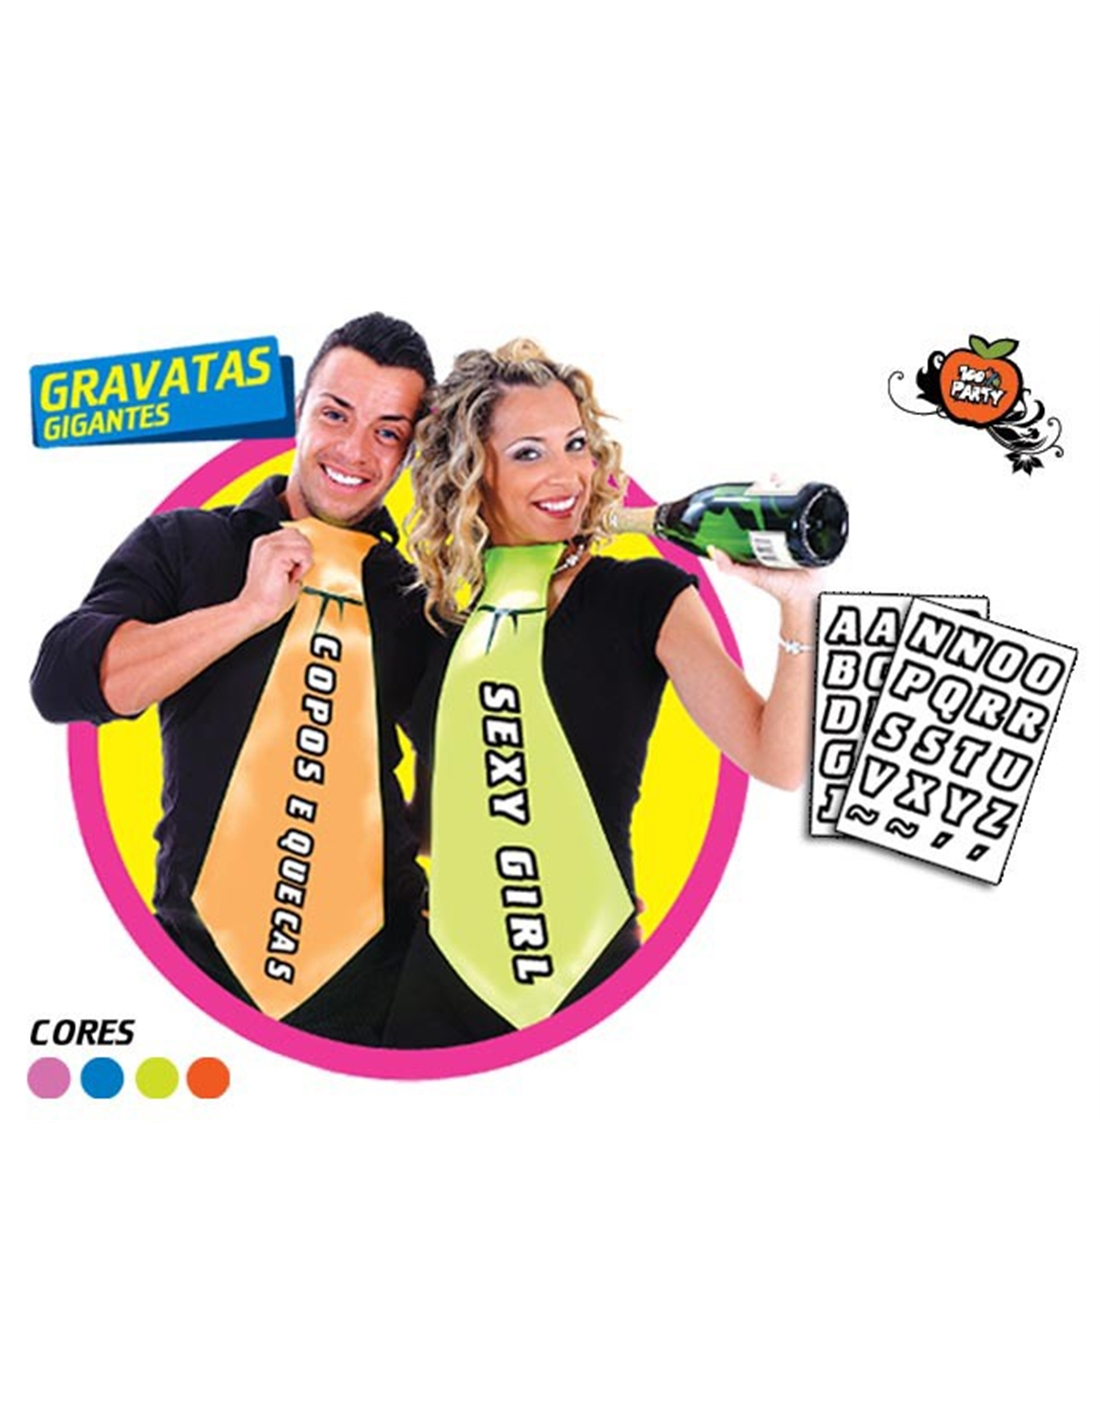 Gravata Gigante - DO29011689